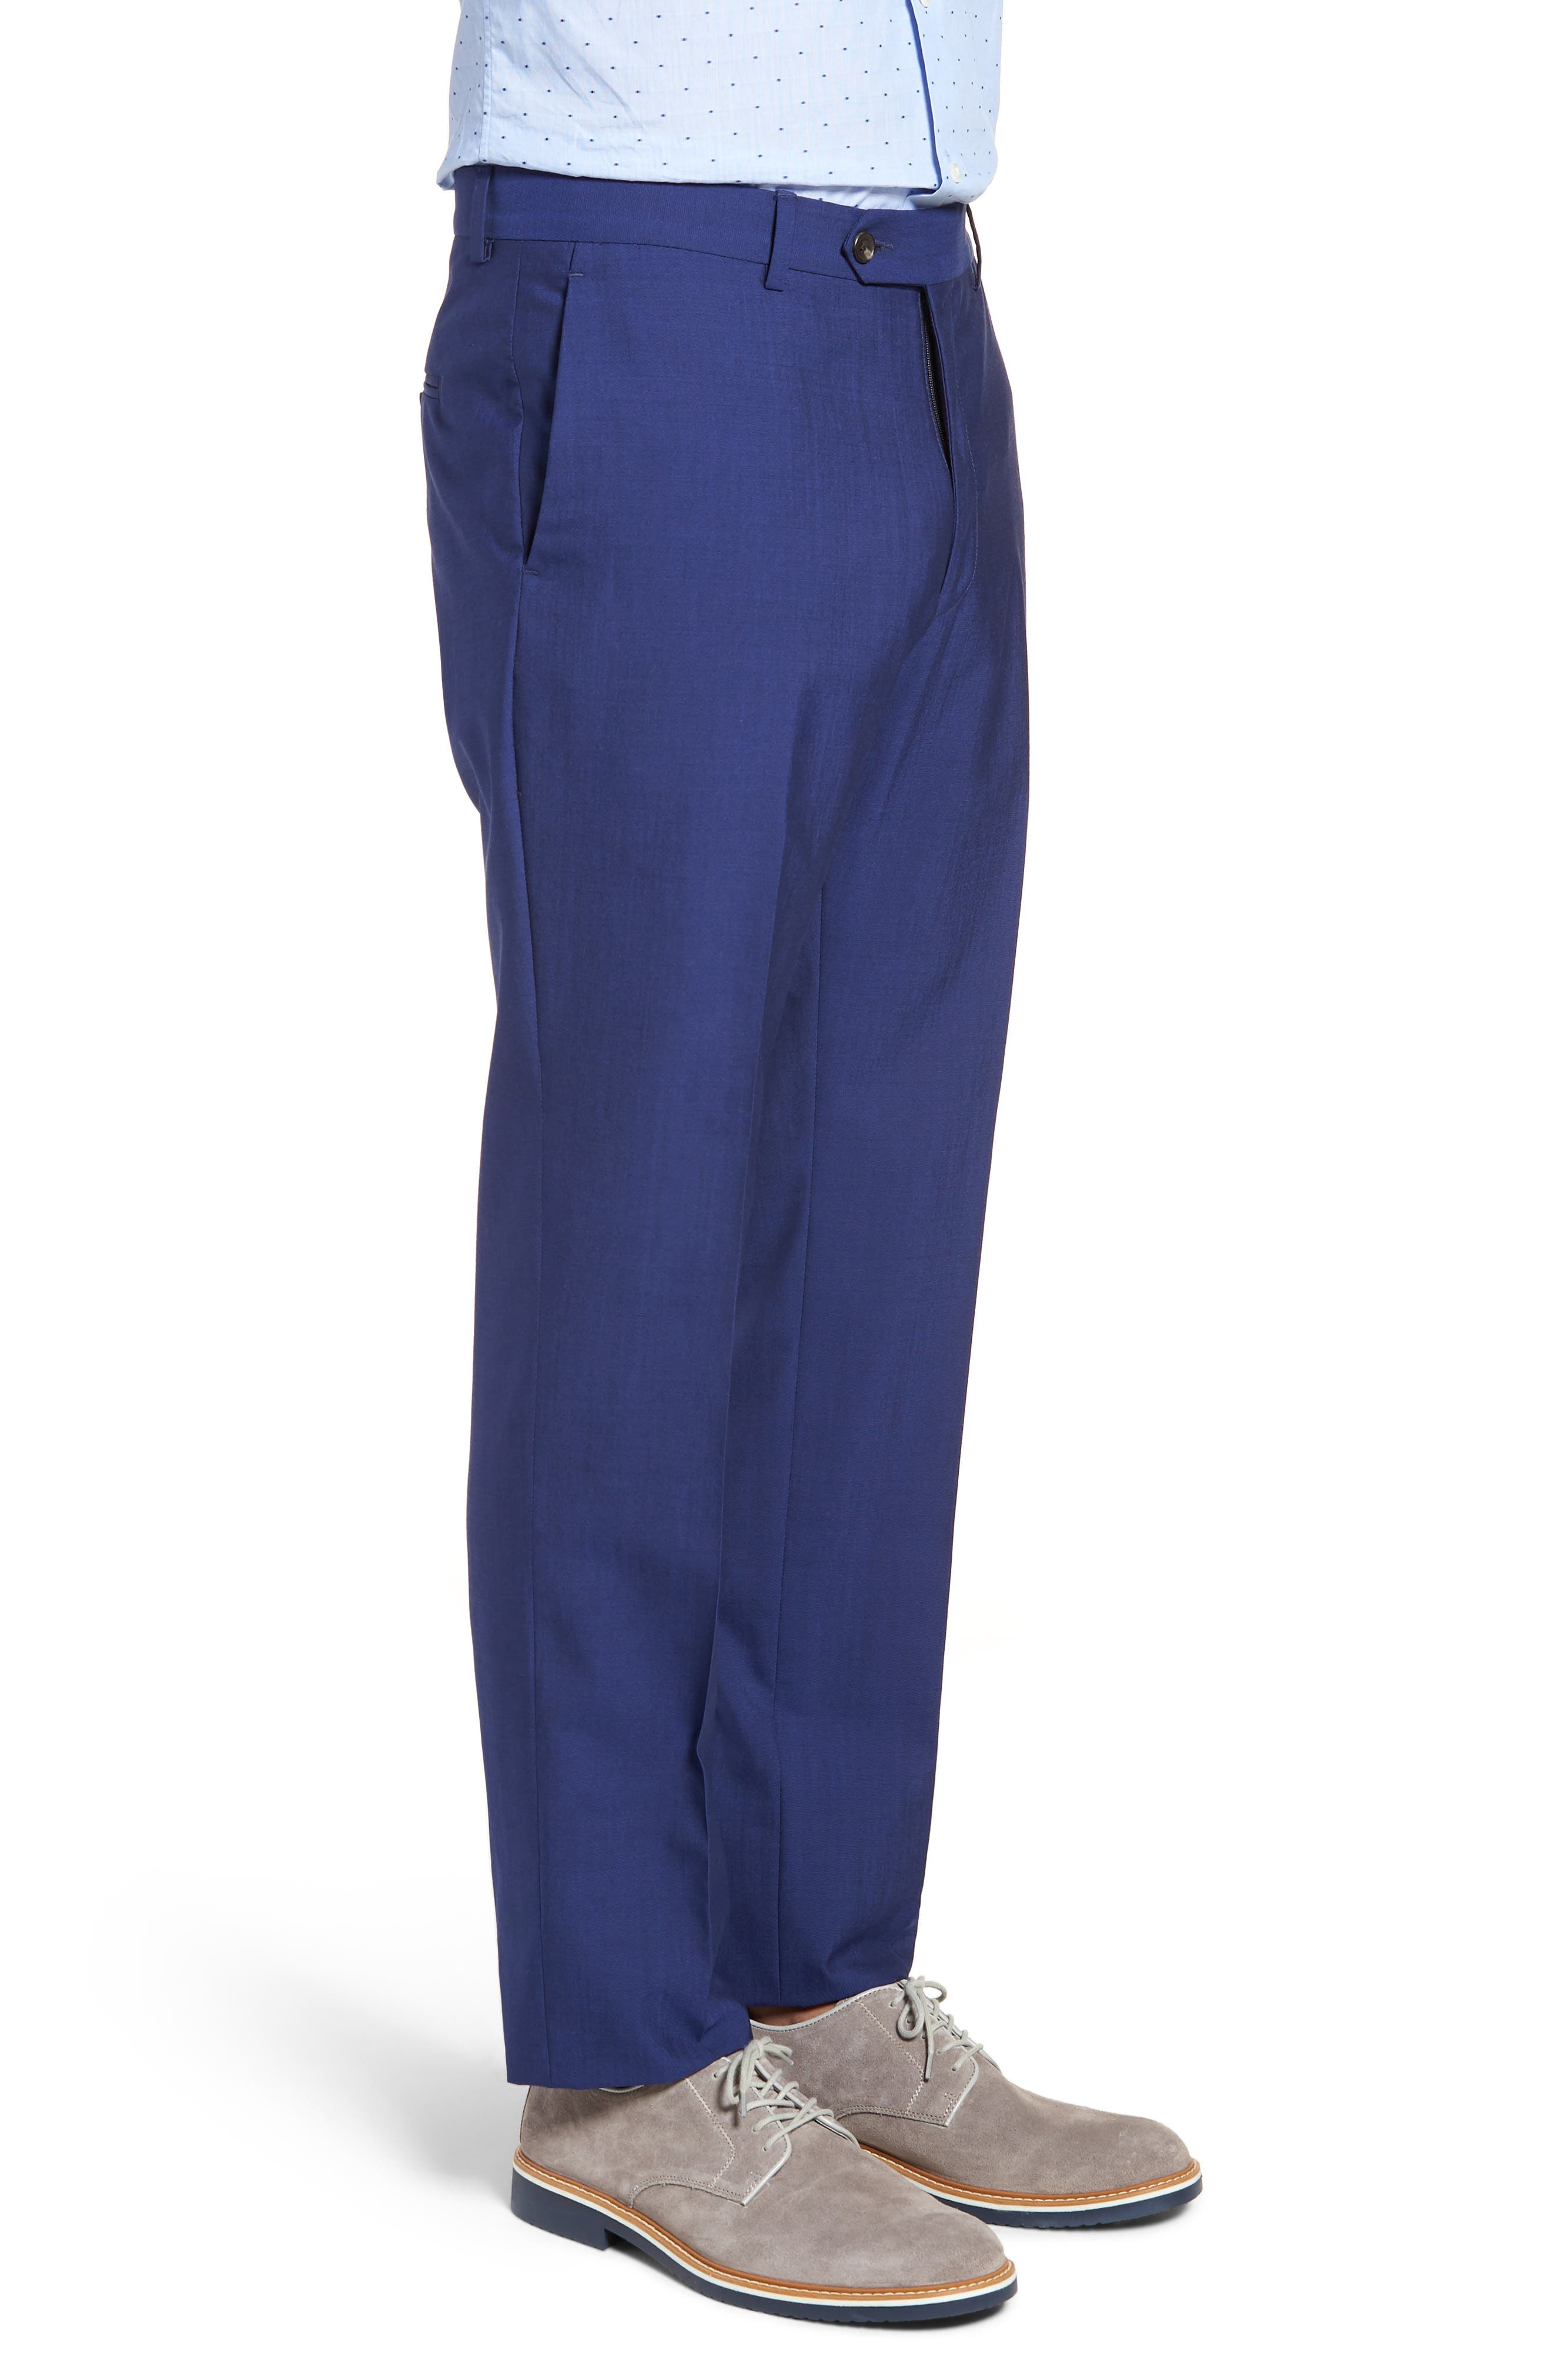 Dagger Flat Front Solid Wool Trousers,                             Alternate thumbnail 3, color,                             400